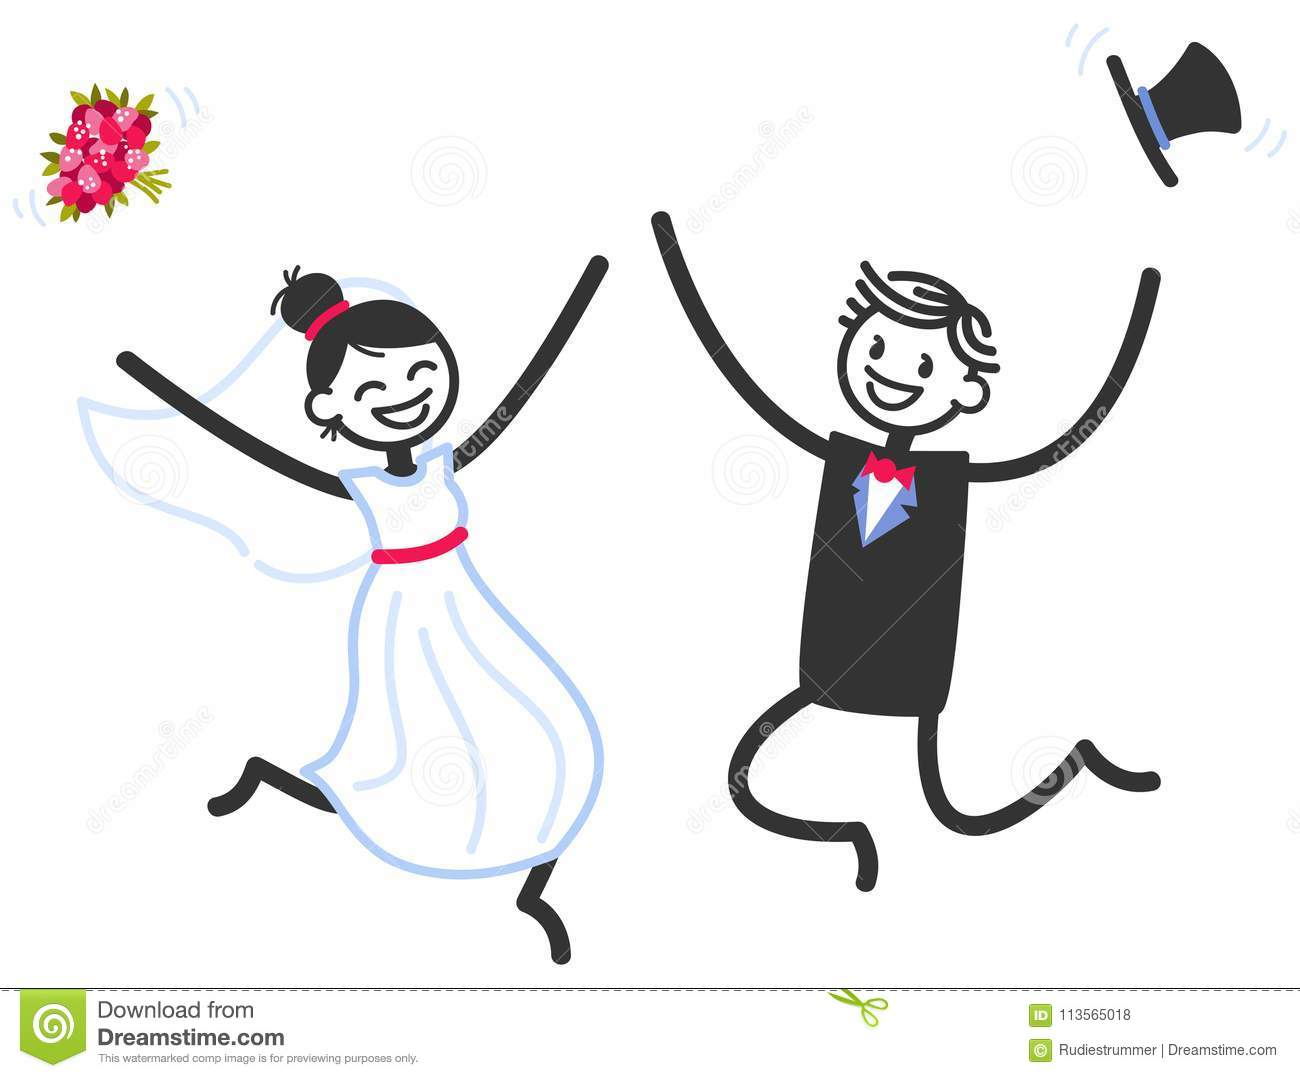 Stick Figure Wedding Invitations: Vector Wedding Illustration Of Happy Stick Figures Bridal